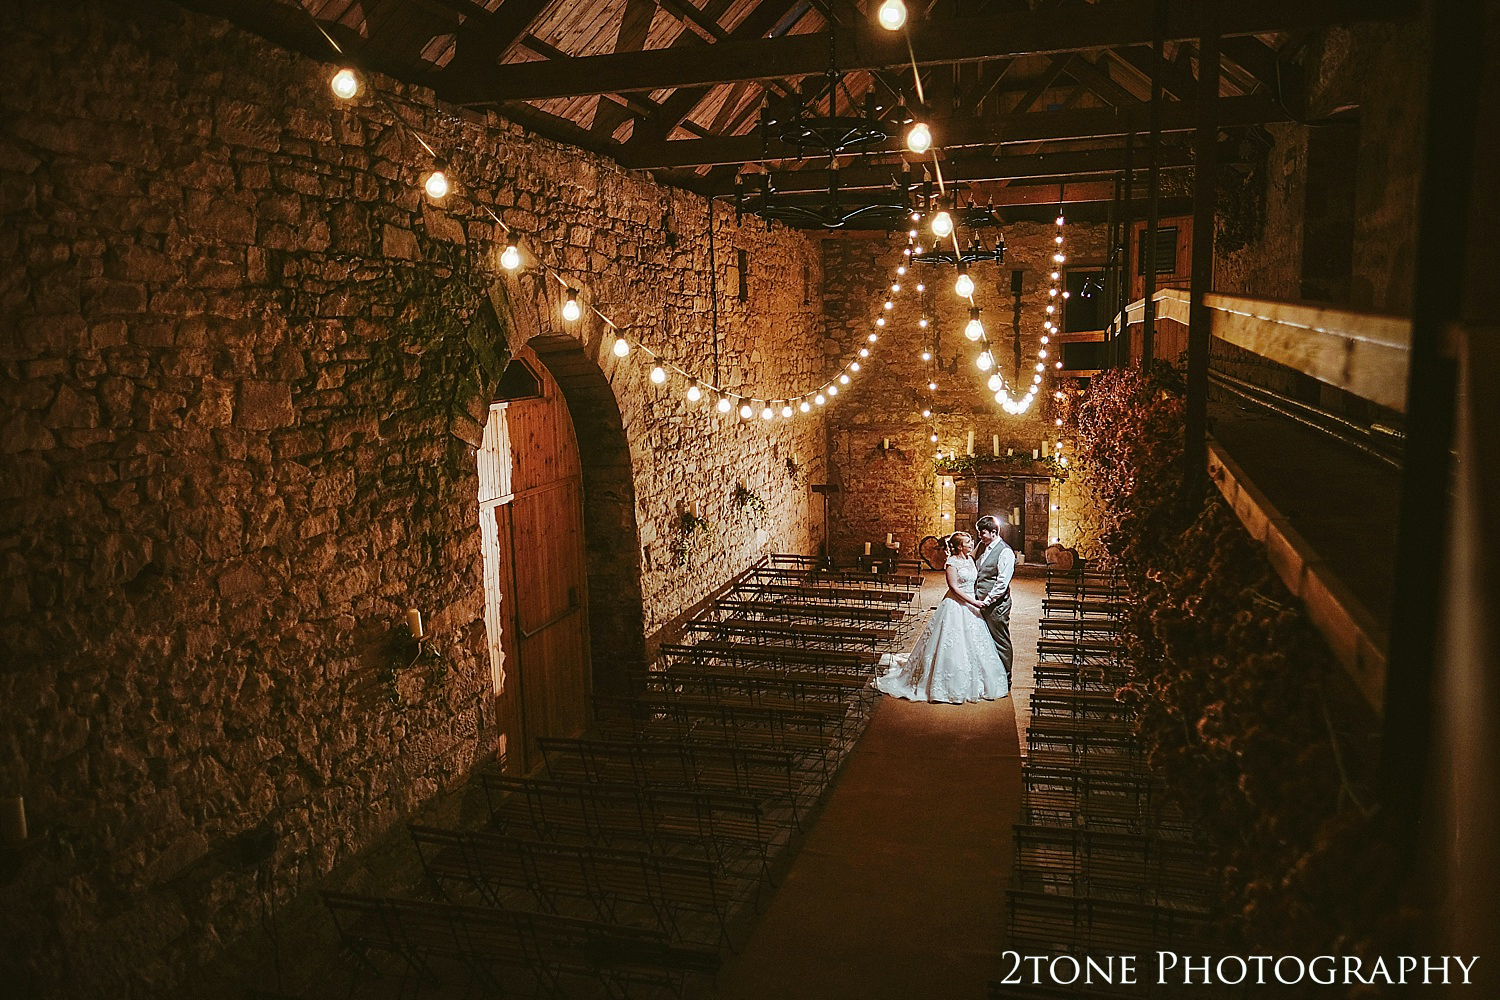 Doxford barns wedding photographer